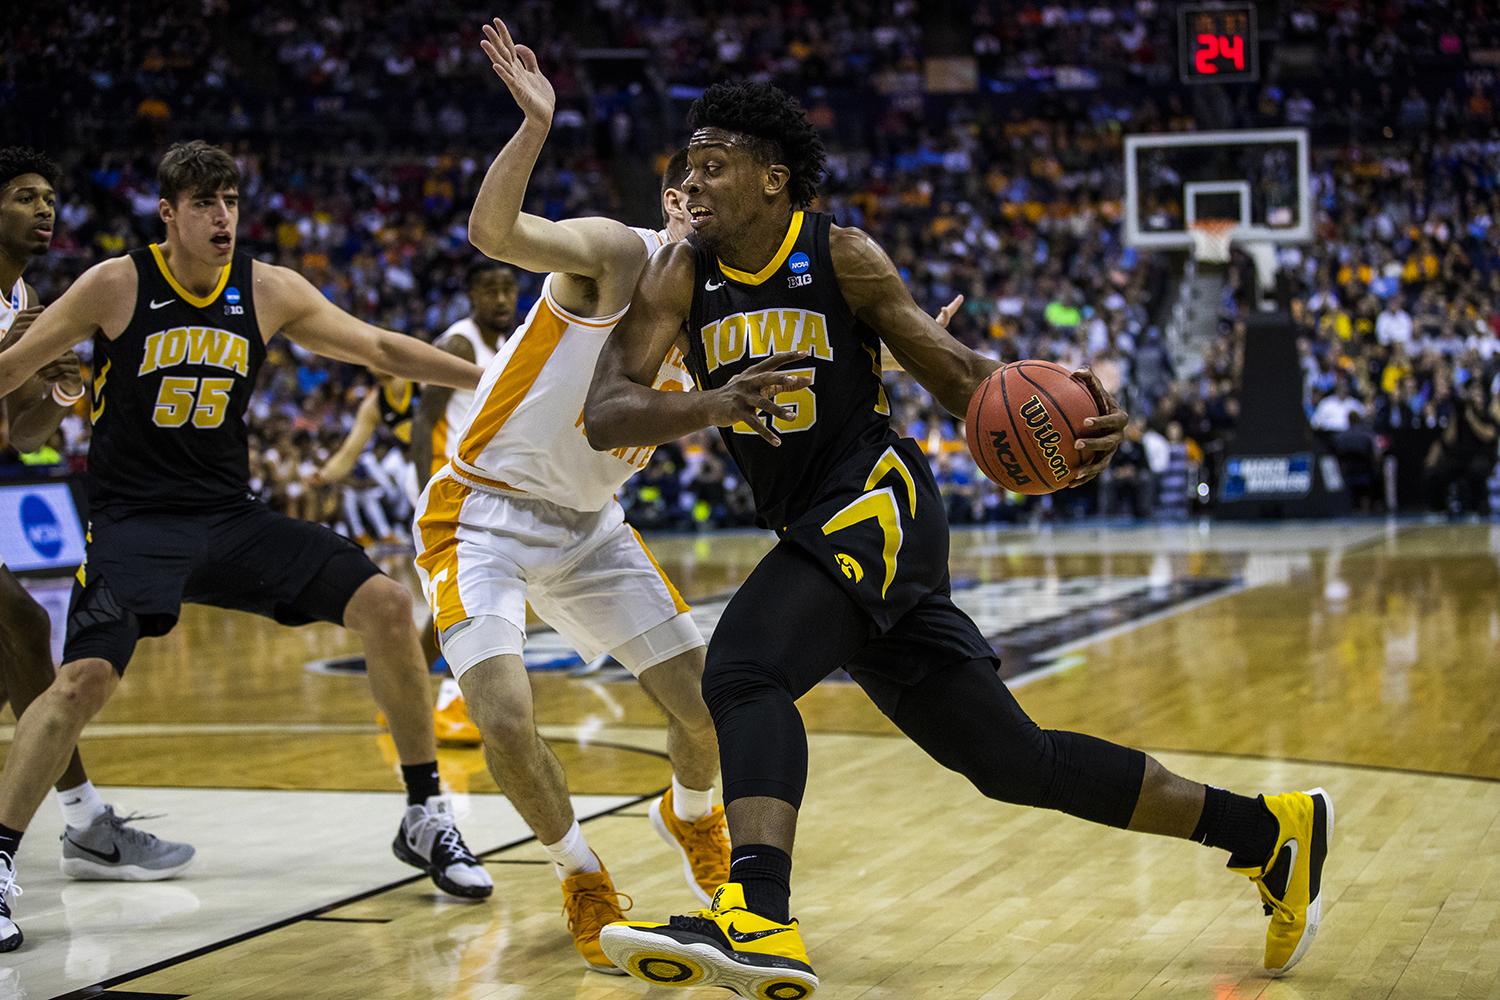 Iowa forward Tyler Cook drives past Tennessee forward John Fulkerson during the NCAA game against Tennessee at Nationwide Arena on Sunday, March 24, 2019. The Volunteers defeated the Hawkeyes 83-77 in overtime.